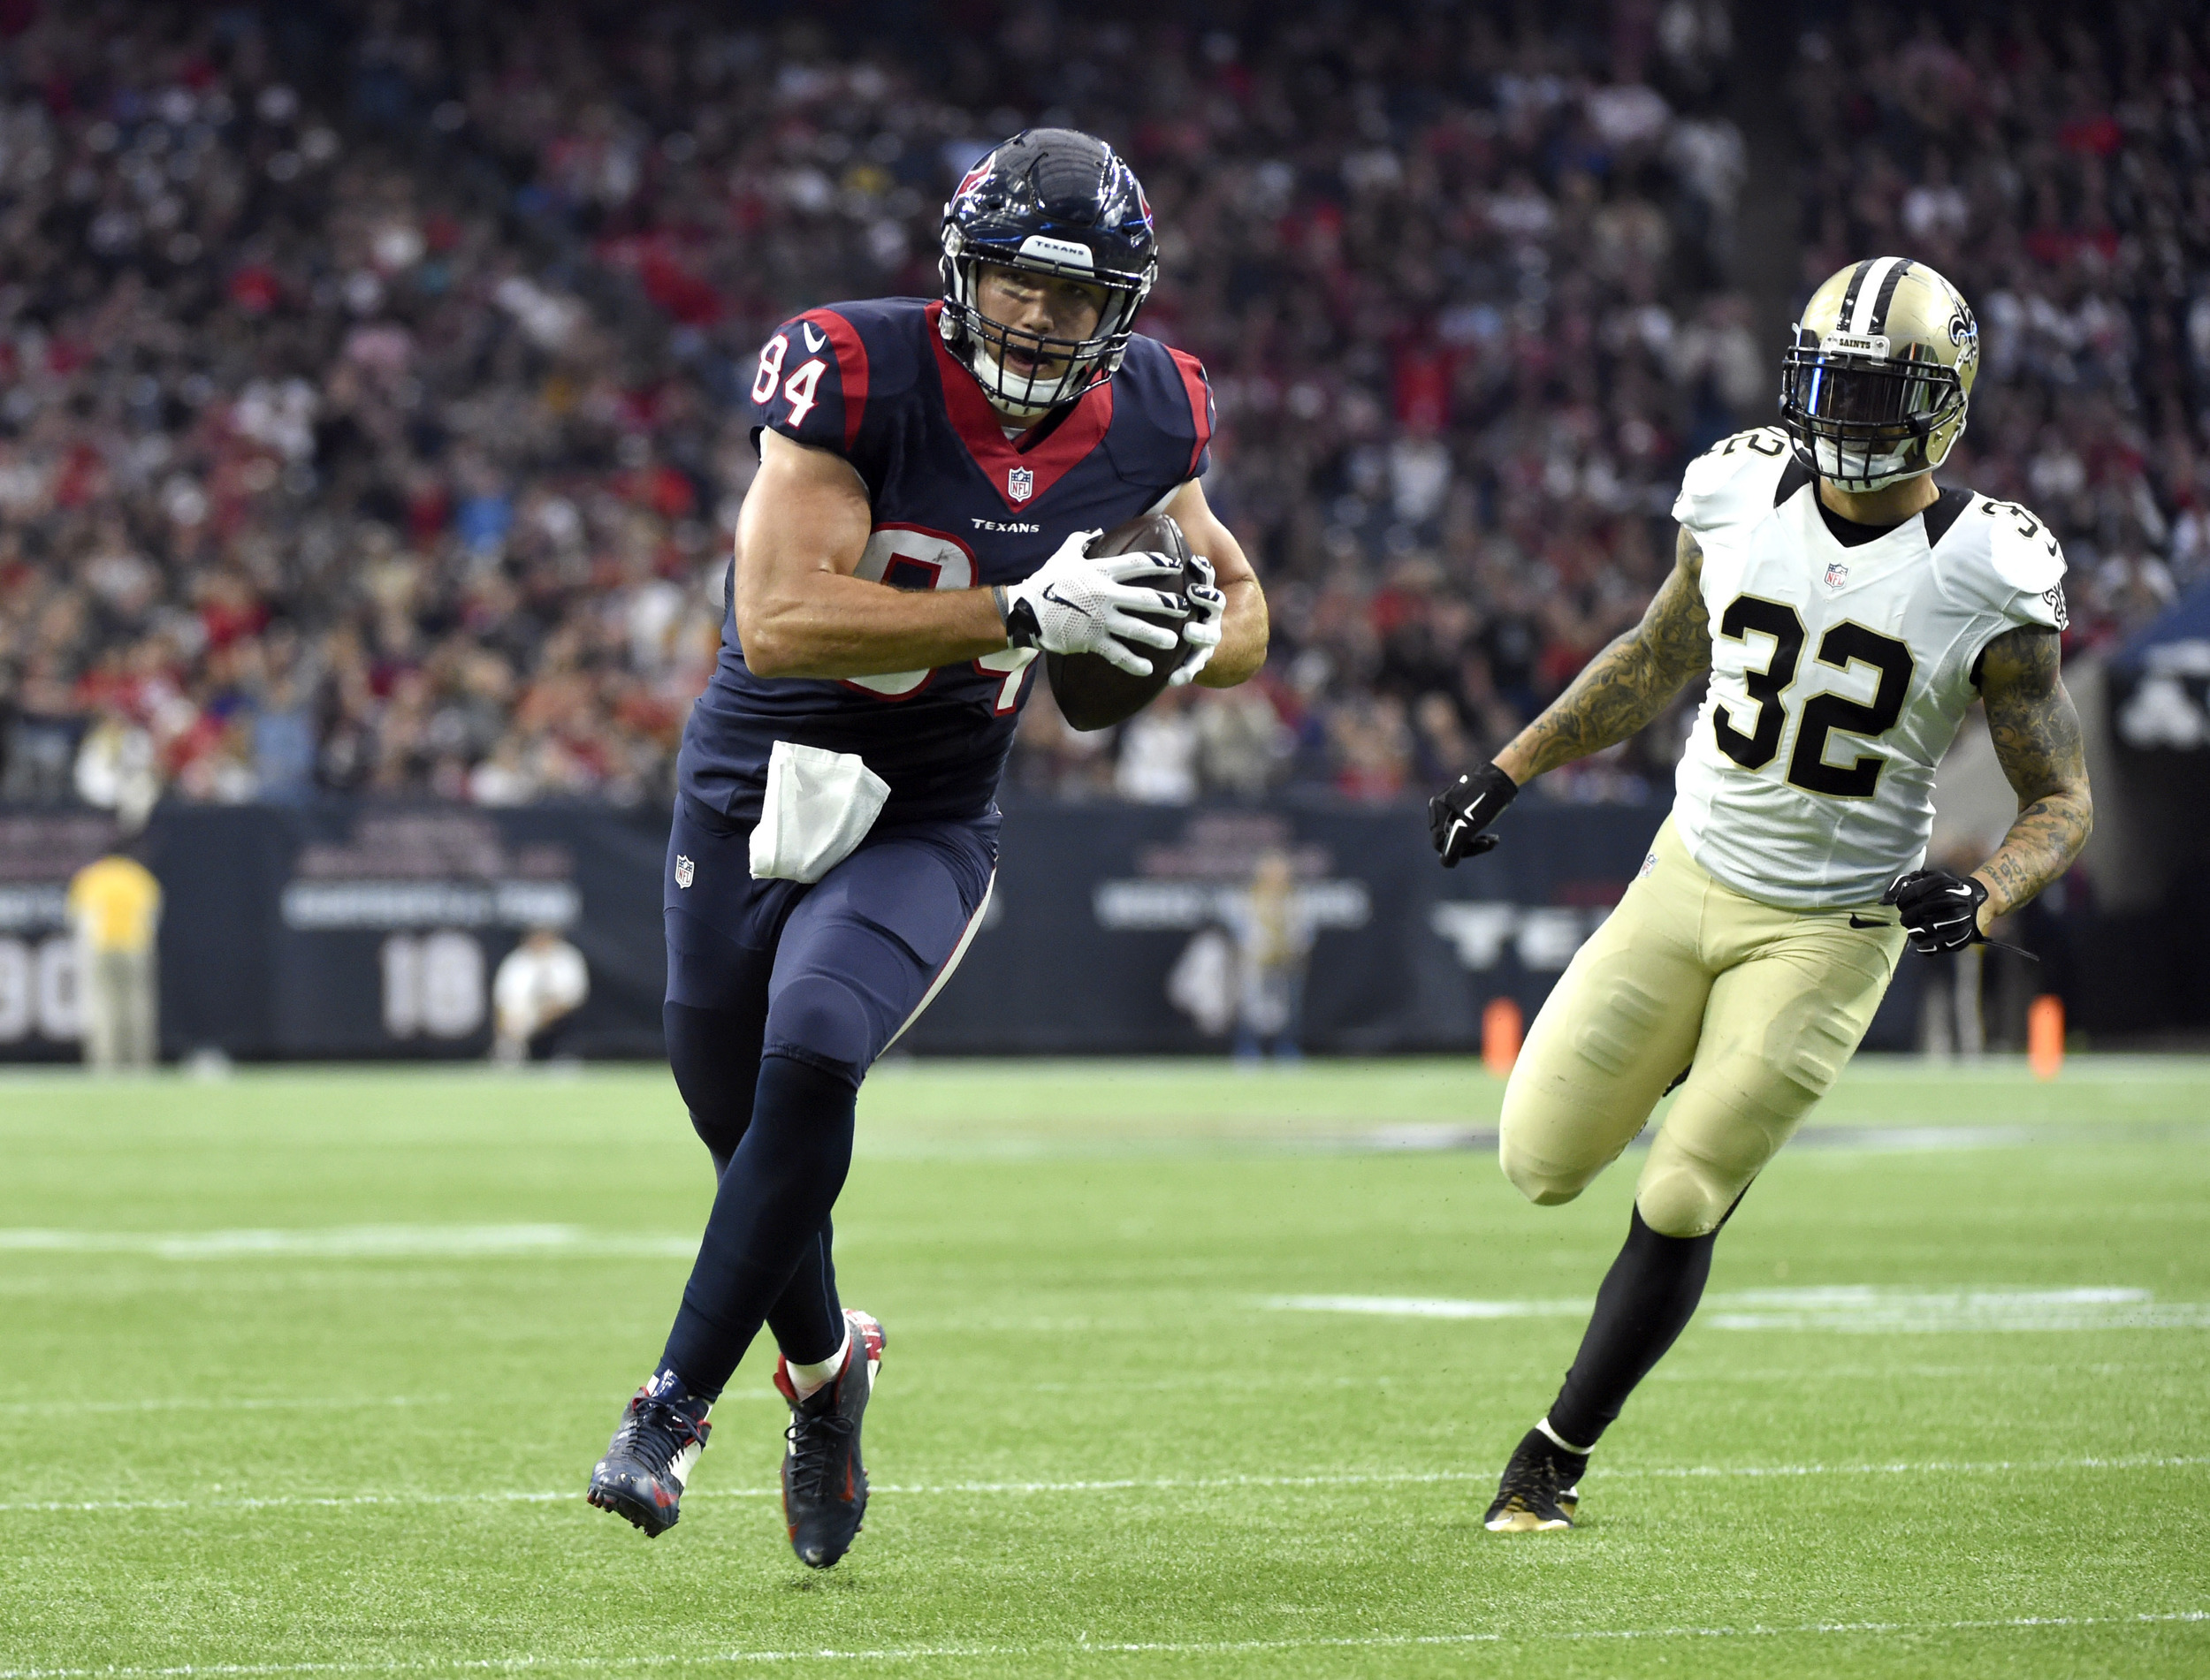 Houston Texans tight end Ryan Griffin (84) runs toward the end zone to score a touchdown after catching a pass as New Orleans Saints strong safety Kenny Vaccaro (32) defends during the first quarter of an NFL football game, Sunday, Nov. 29, 2015, in Houston. (Eric Christian Smith/AP)